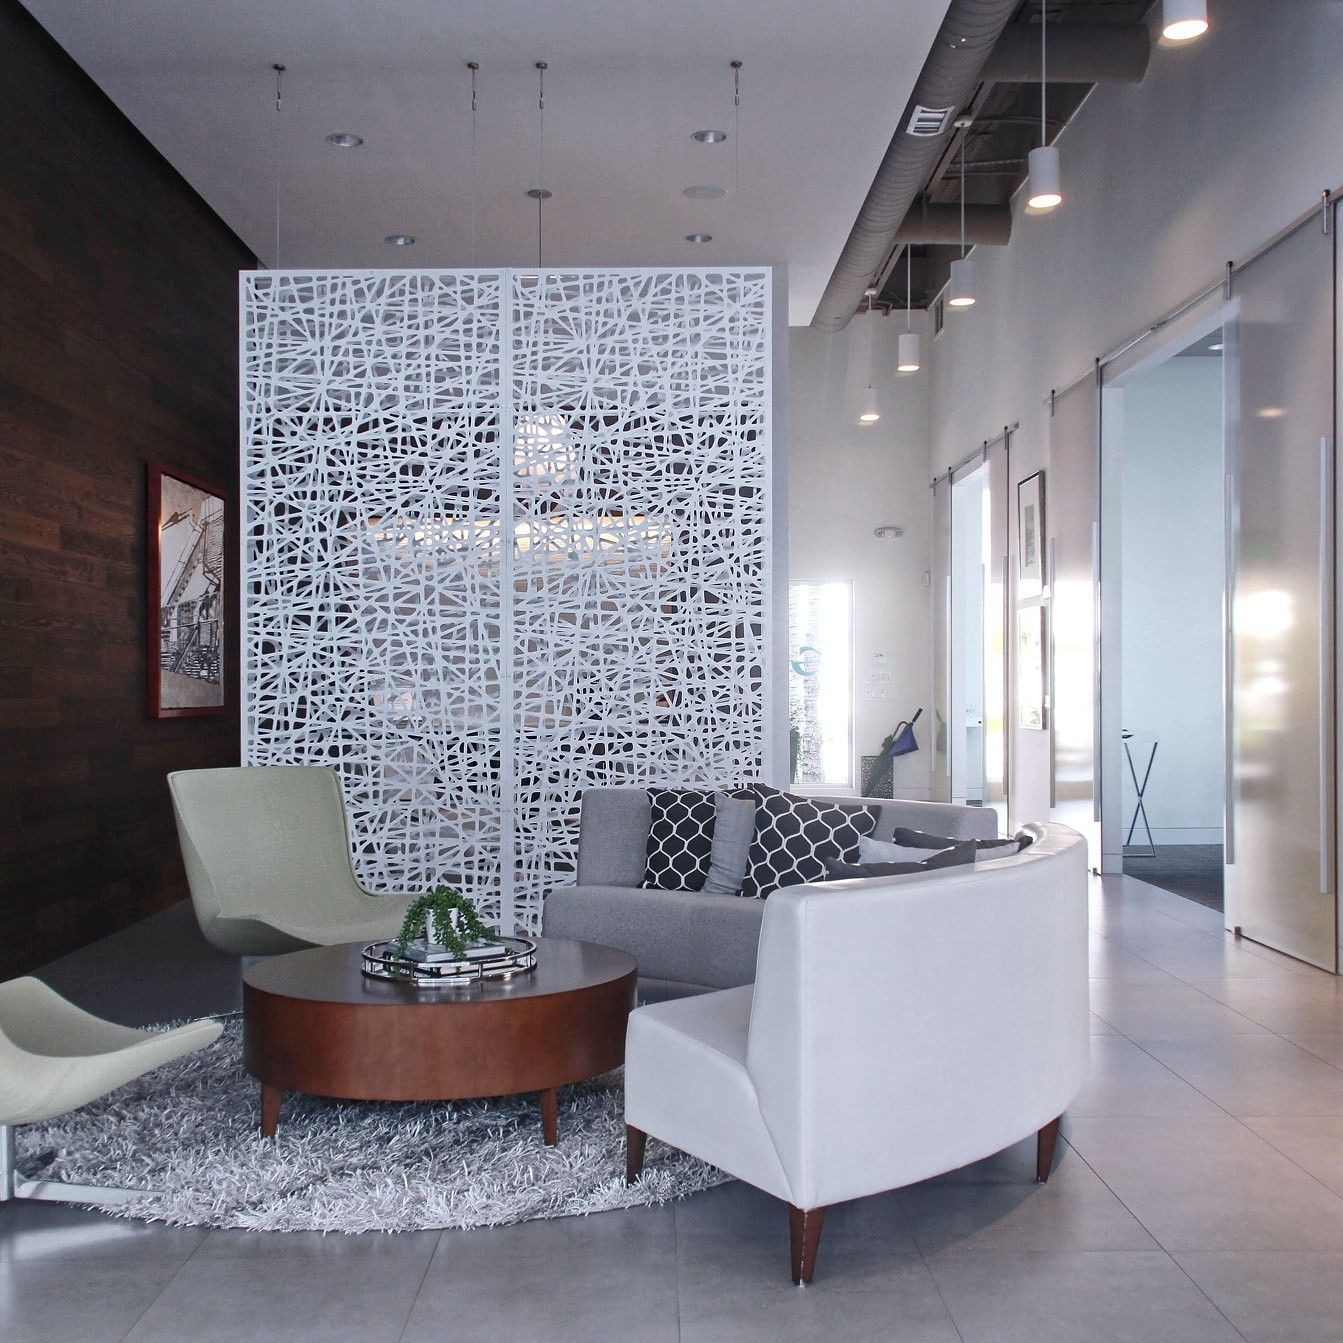 Lobby Accent Wall Corporate Messaging: Pin By RAZORTOOTHDESIGN On Lobby Design